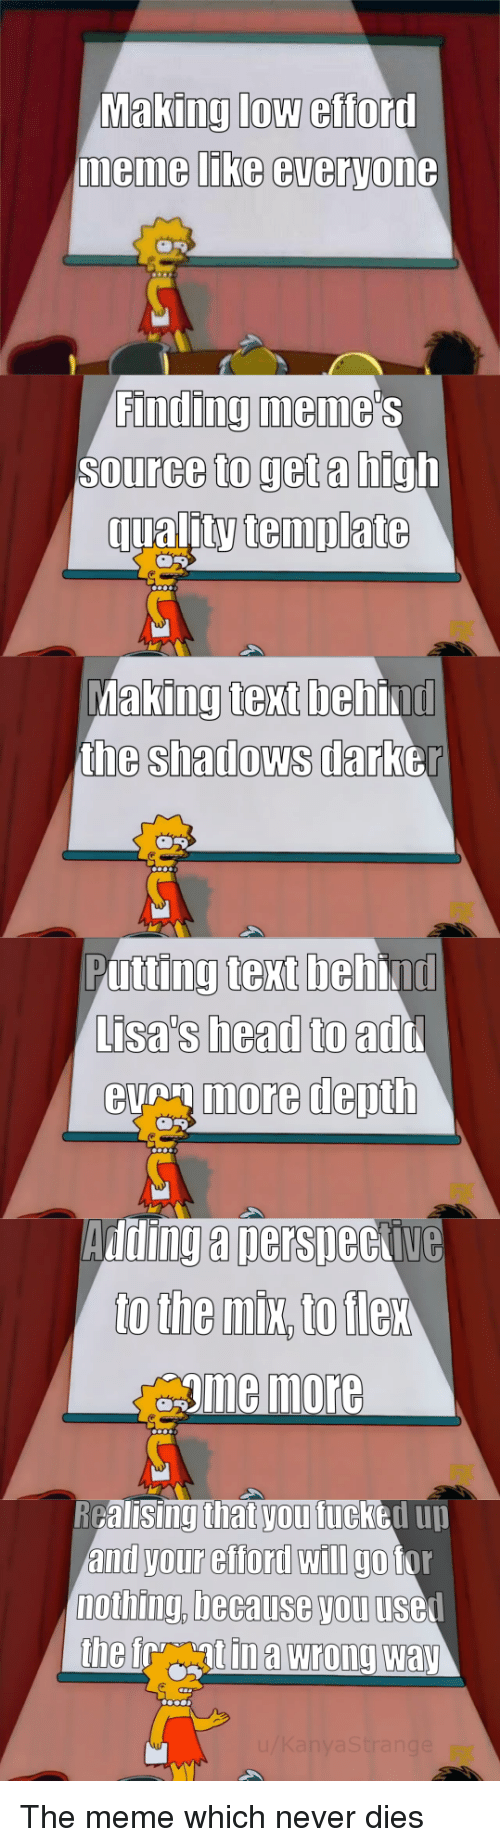 the shadows: Making low efford  memme LIKe everyone  Finding meme  Source to get a high  qualitytemplate  king text beh  the shadows darb  Ma  ind  er  Putting text behind  Lisa's head to  eumore depth  add  Adding a nersneckive  gme more  RGalisingthat vou fucked uu  and your efford wIlI go tor  nothing, because you usel The meme which never dies